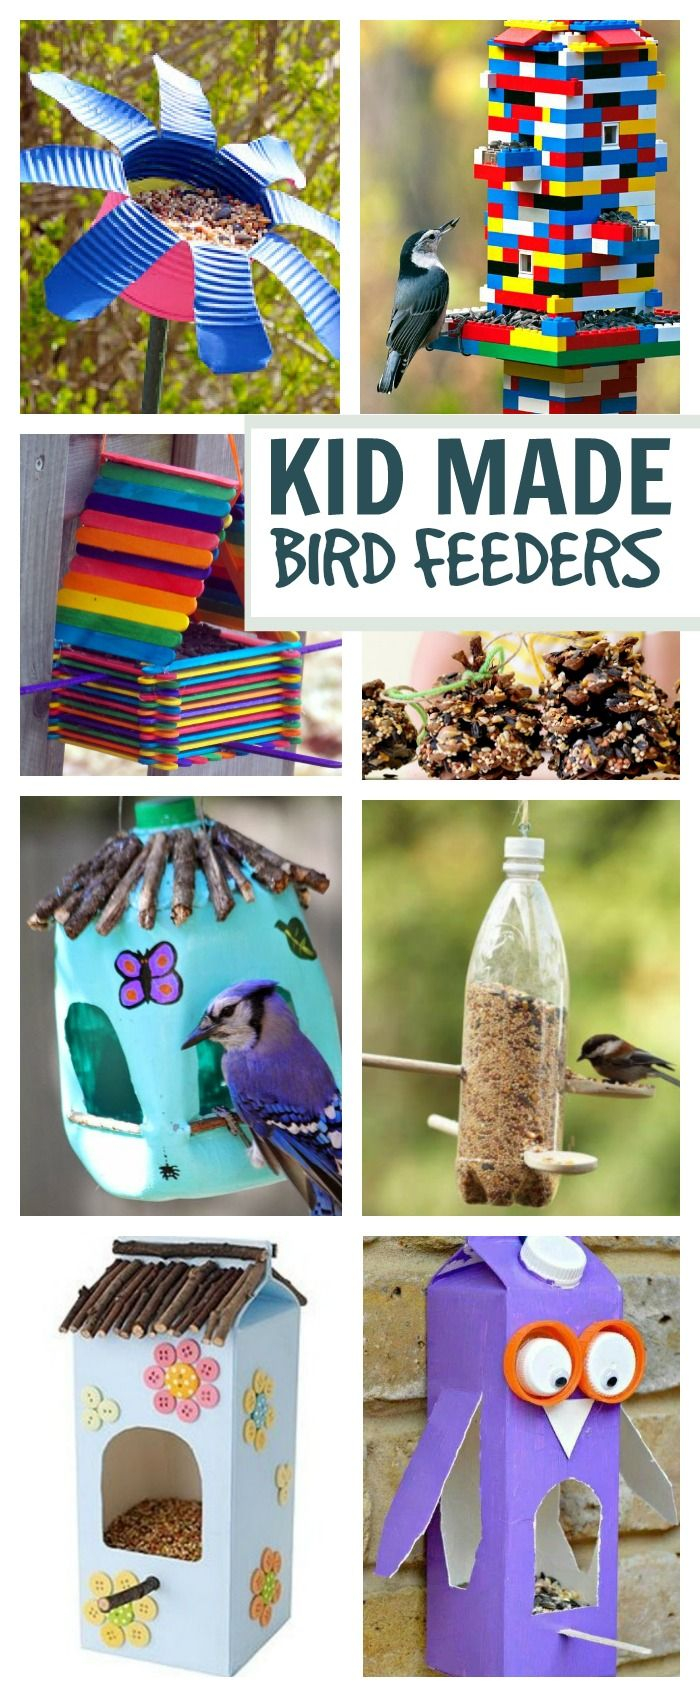 18 totally awesome bird feeder crafts for kids these are so cool i love - Garden Ideas For Toddlers